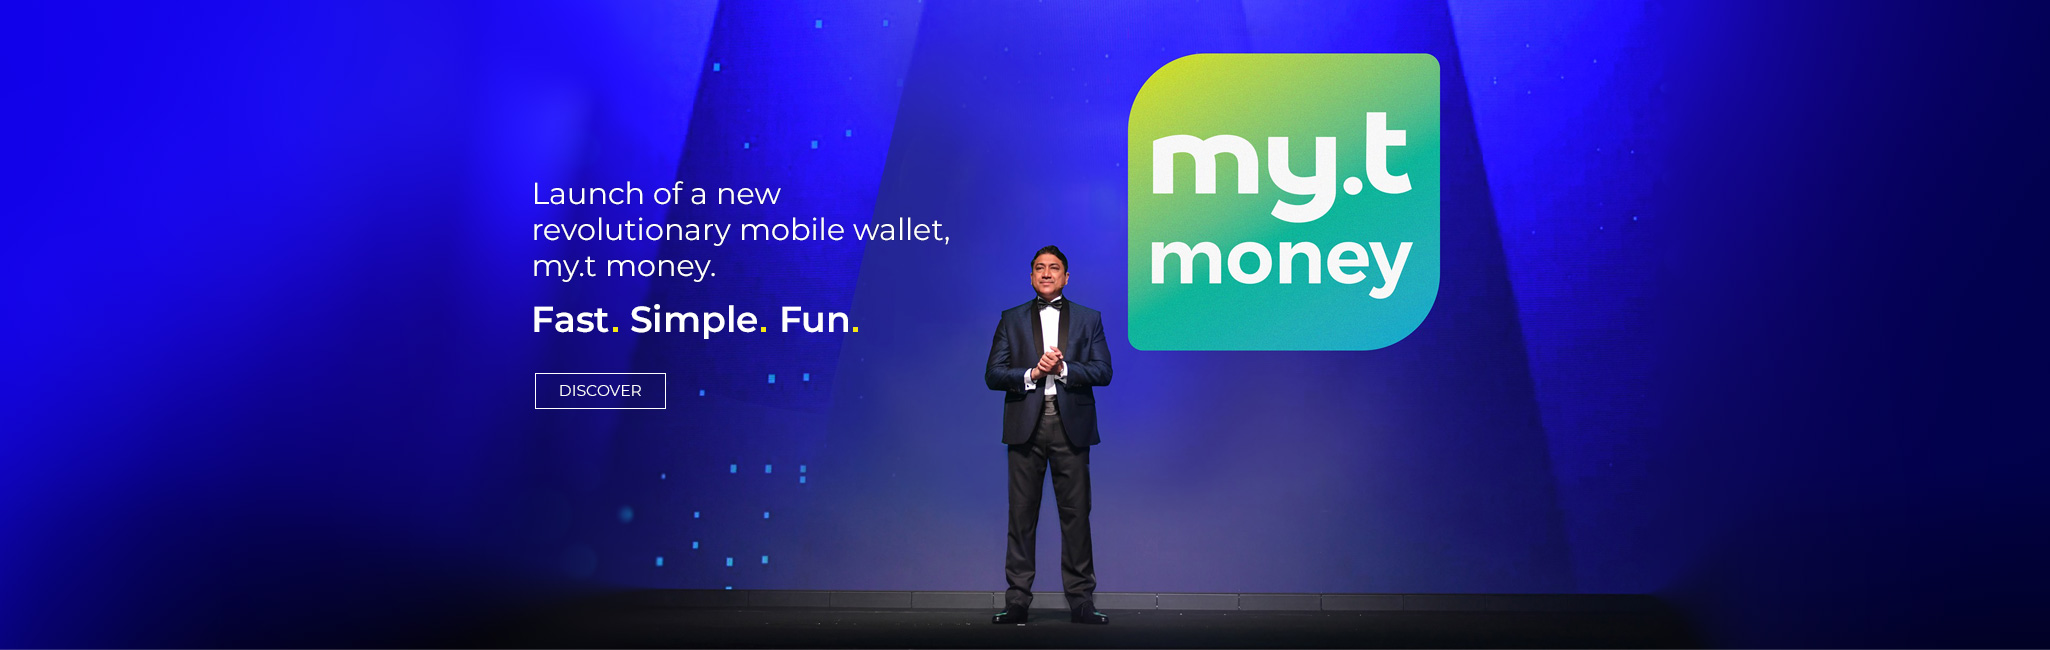 my.t money launch